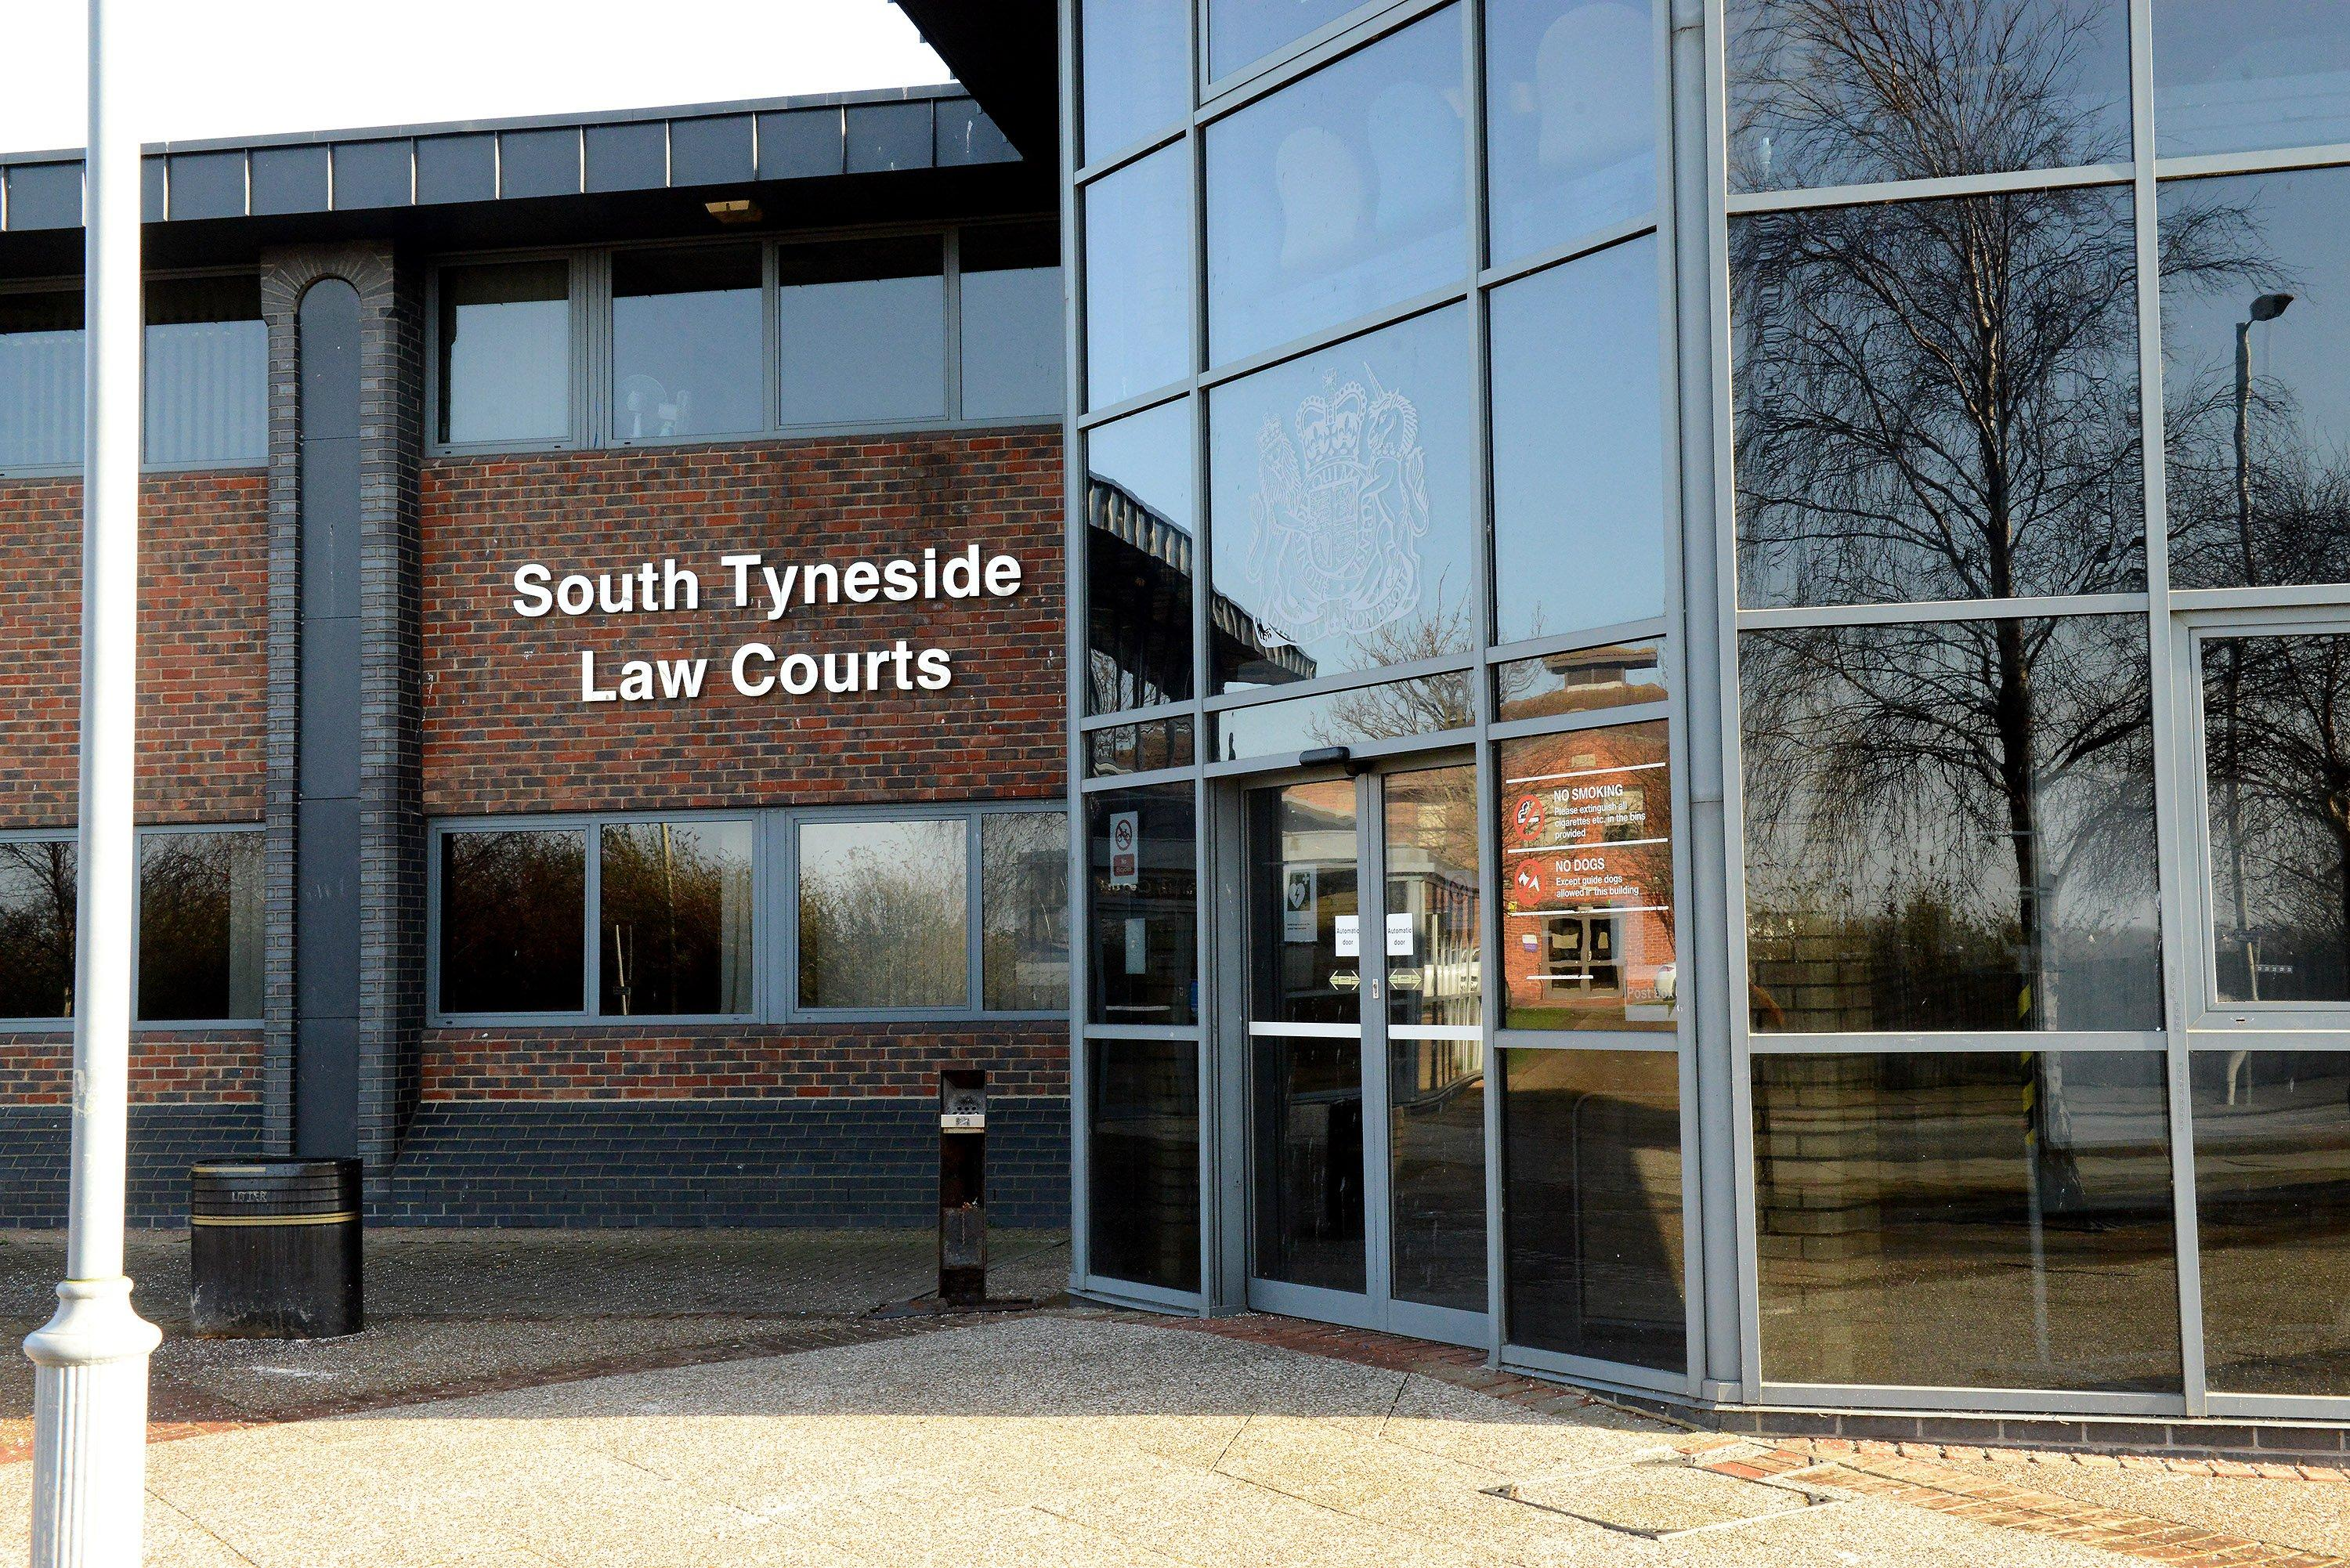 Sunderland Benefits Fraudster Claimed 47 000 She Was Not Entitled To During A Three Year Swindle Sunderland Echo